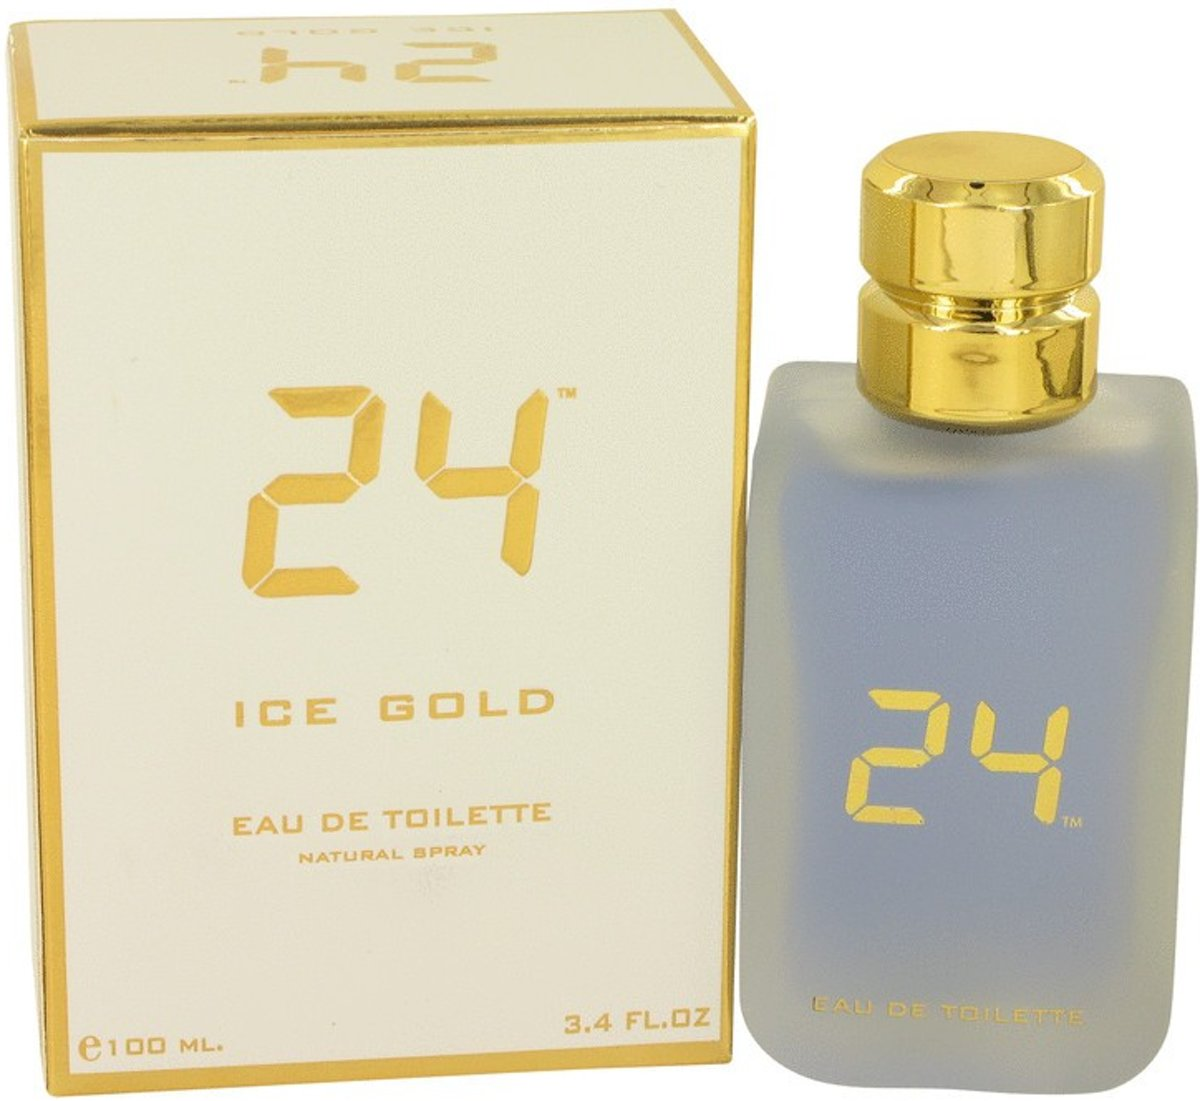 ScentStory 24 Ice Gold Scentstory 100 ml - Eau De Toilette Spray Herenparfum